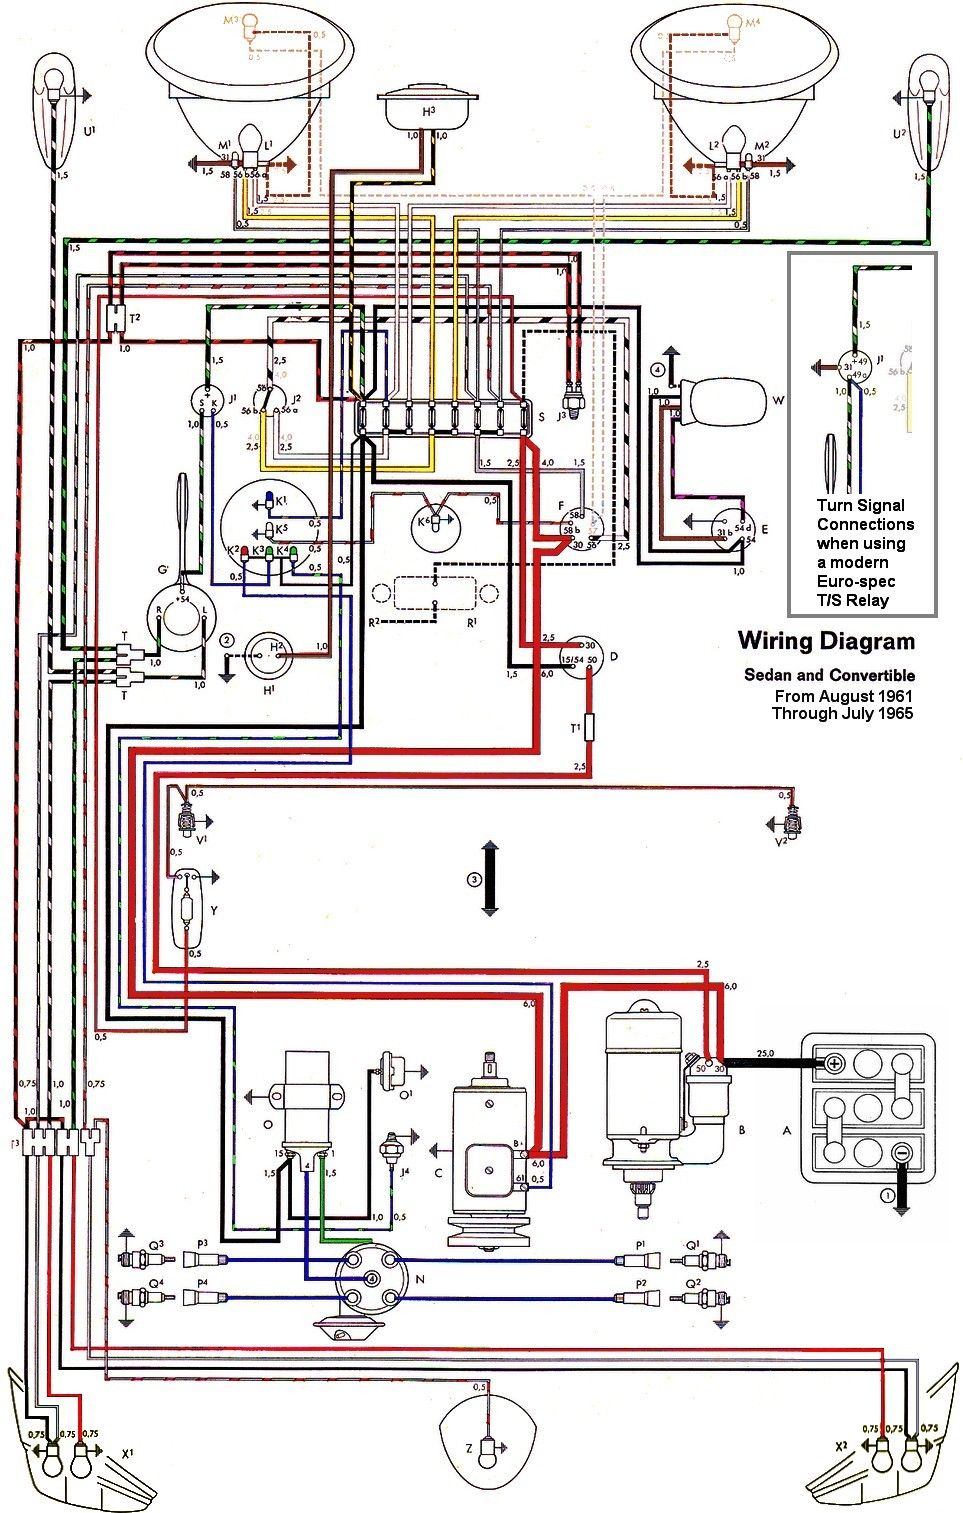 vw car wiring diagram volkswagen car wiring diagram volkswagen image wiring diagram vw beetle sedan and convertible 1961 1965 vw